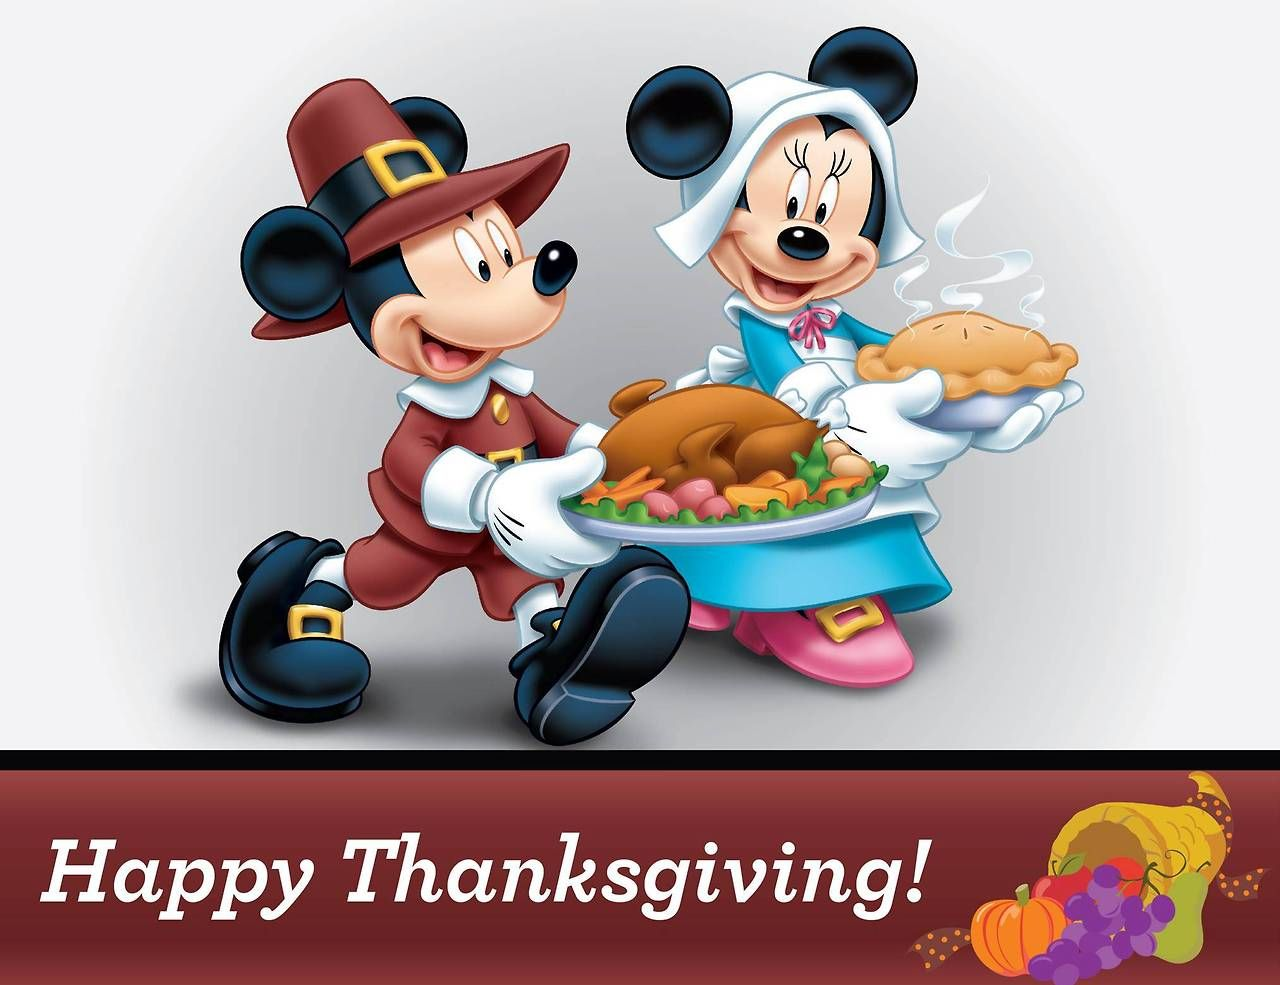 Disney Mickey And Minnie Mouse Happy Thanksgiving Wallpaper Id 6426 Download Pag Disney Thanksgiving Happy Thanksgiving Wallpaper Thanksgiving Wallpaper